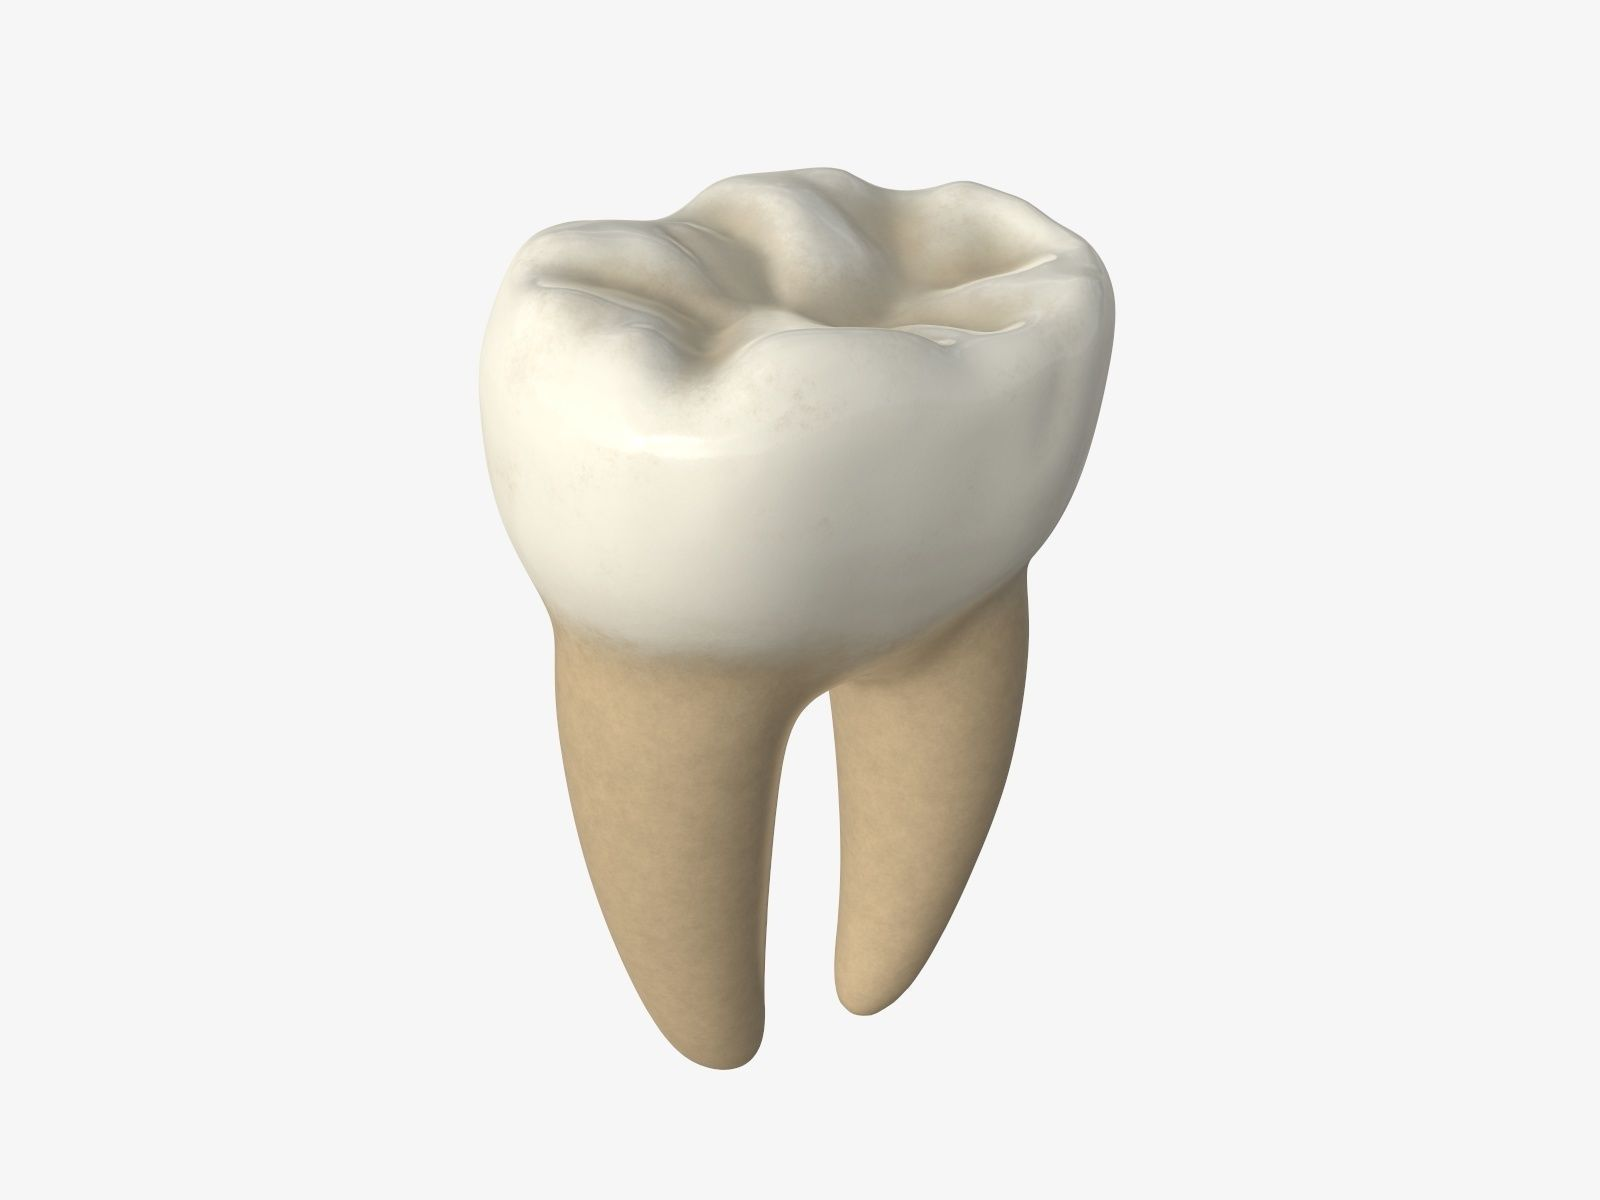 Tooth molars